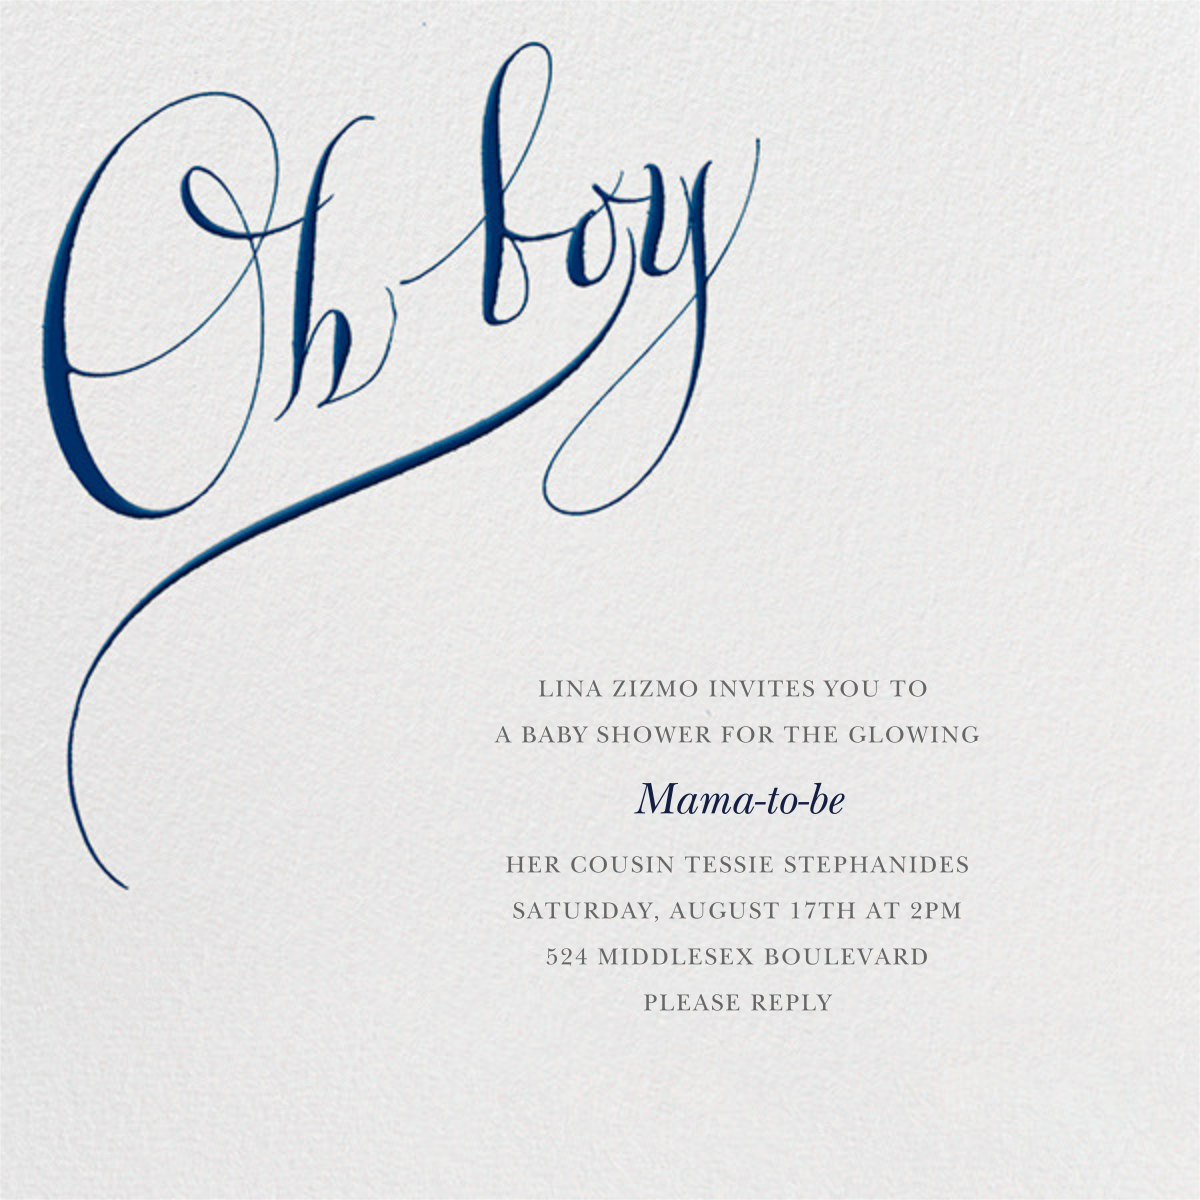 Oh Boy - Bernard Maisner - Baby shower